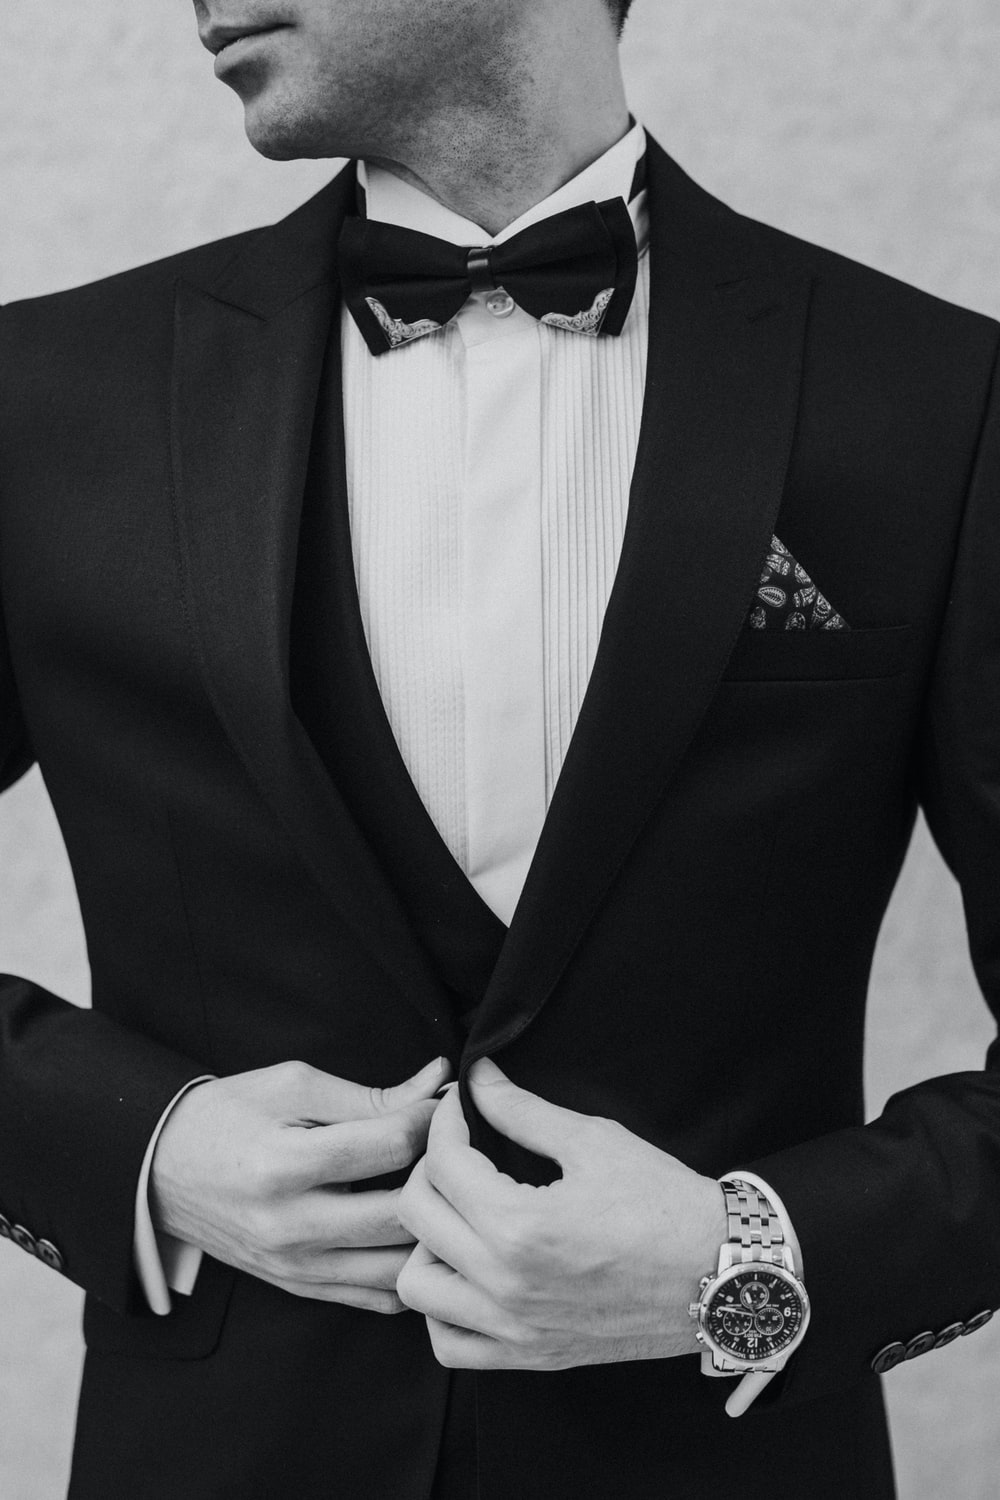 500 Men Suit Pictures Hd Download Free Images On Unsplash